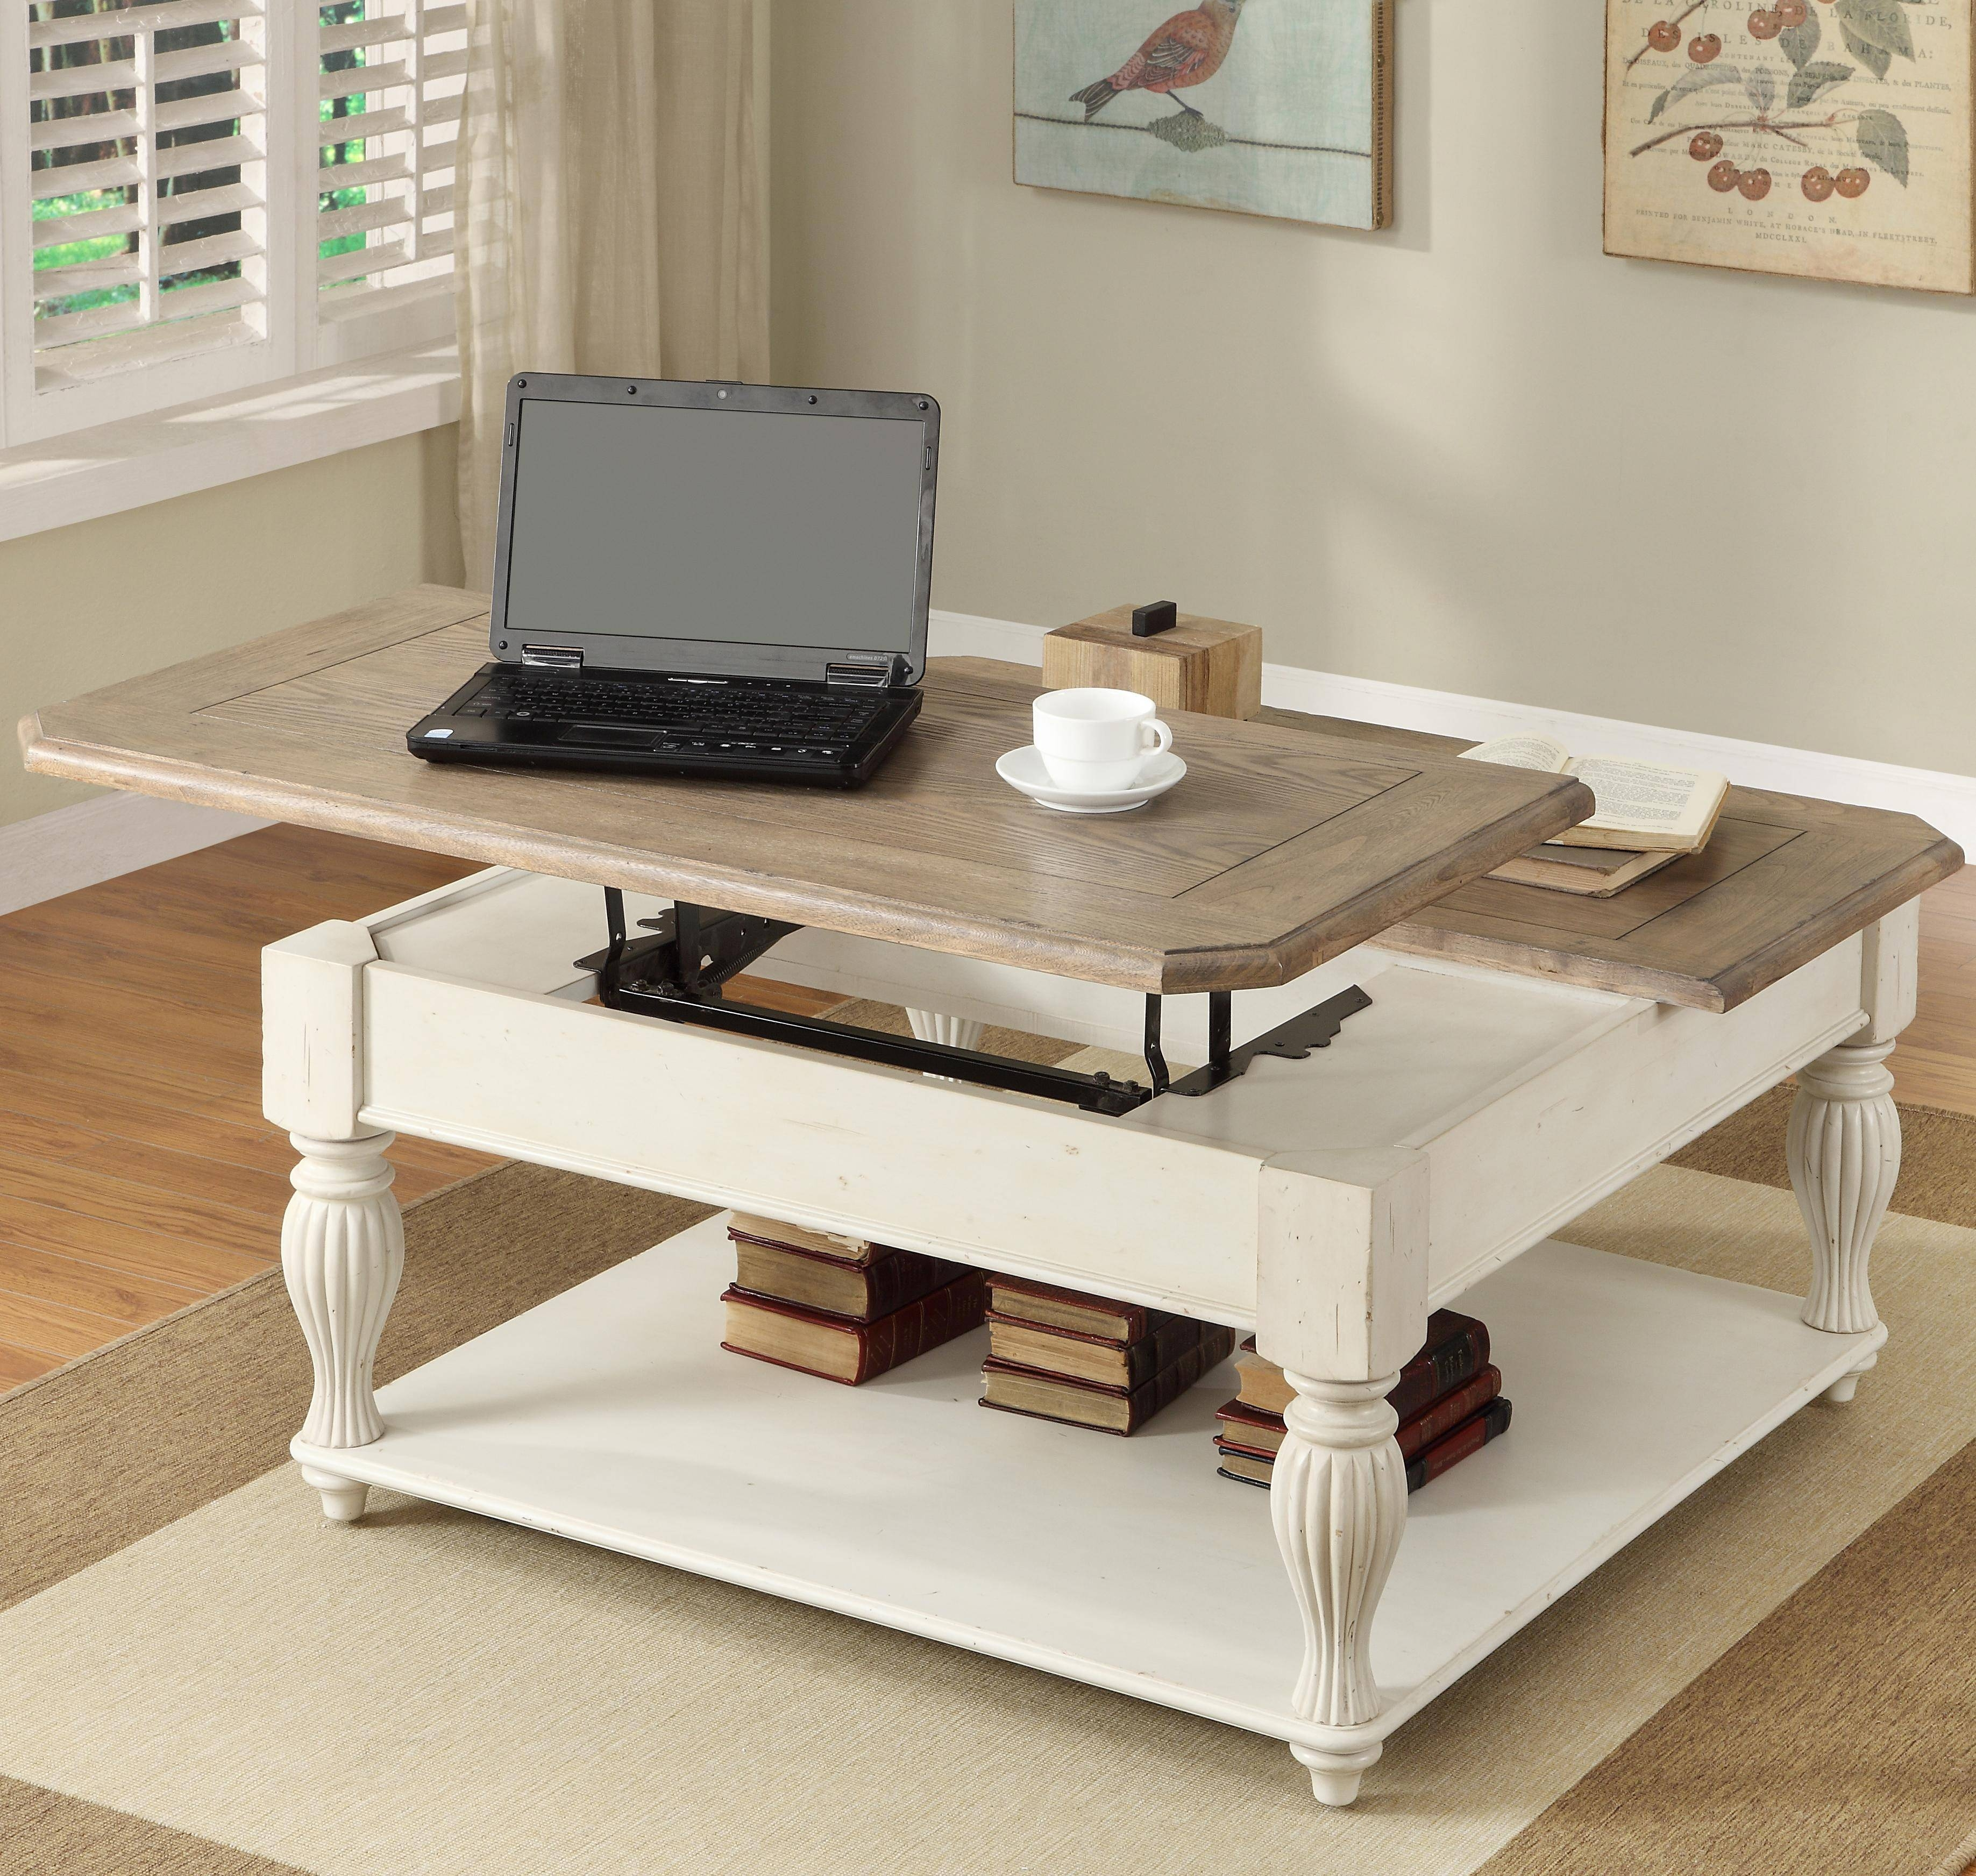 Square Lift-Top Coffee Table With Fixed Bottom Shelfriverside for Lift Top Coffee Table Furniture (Image 27 of 30)